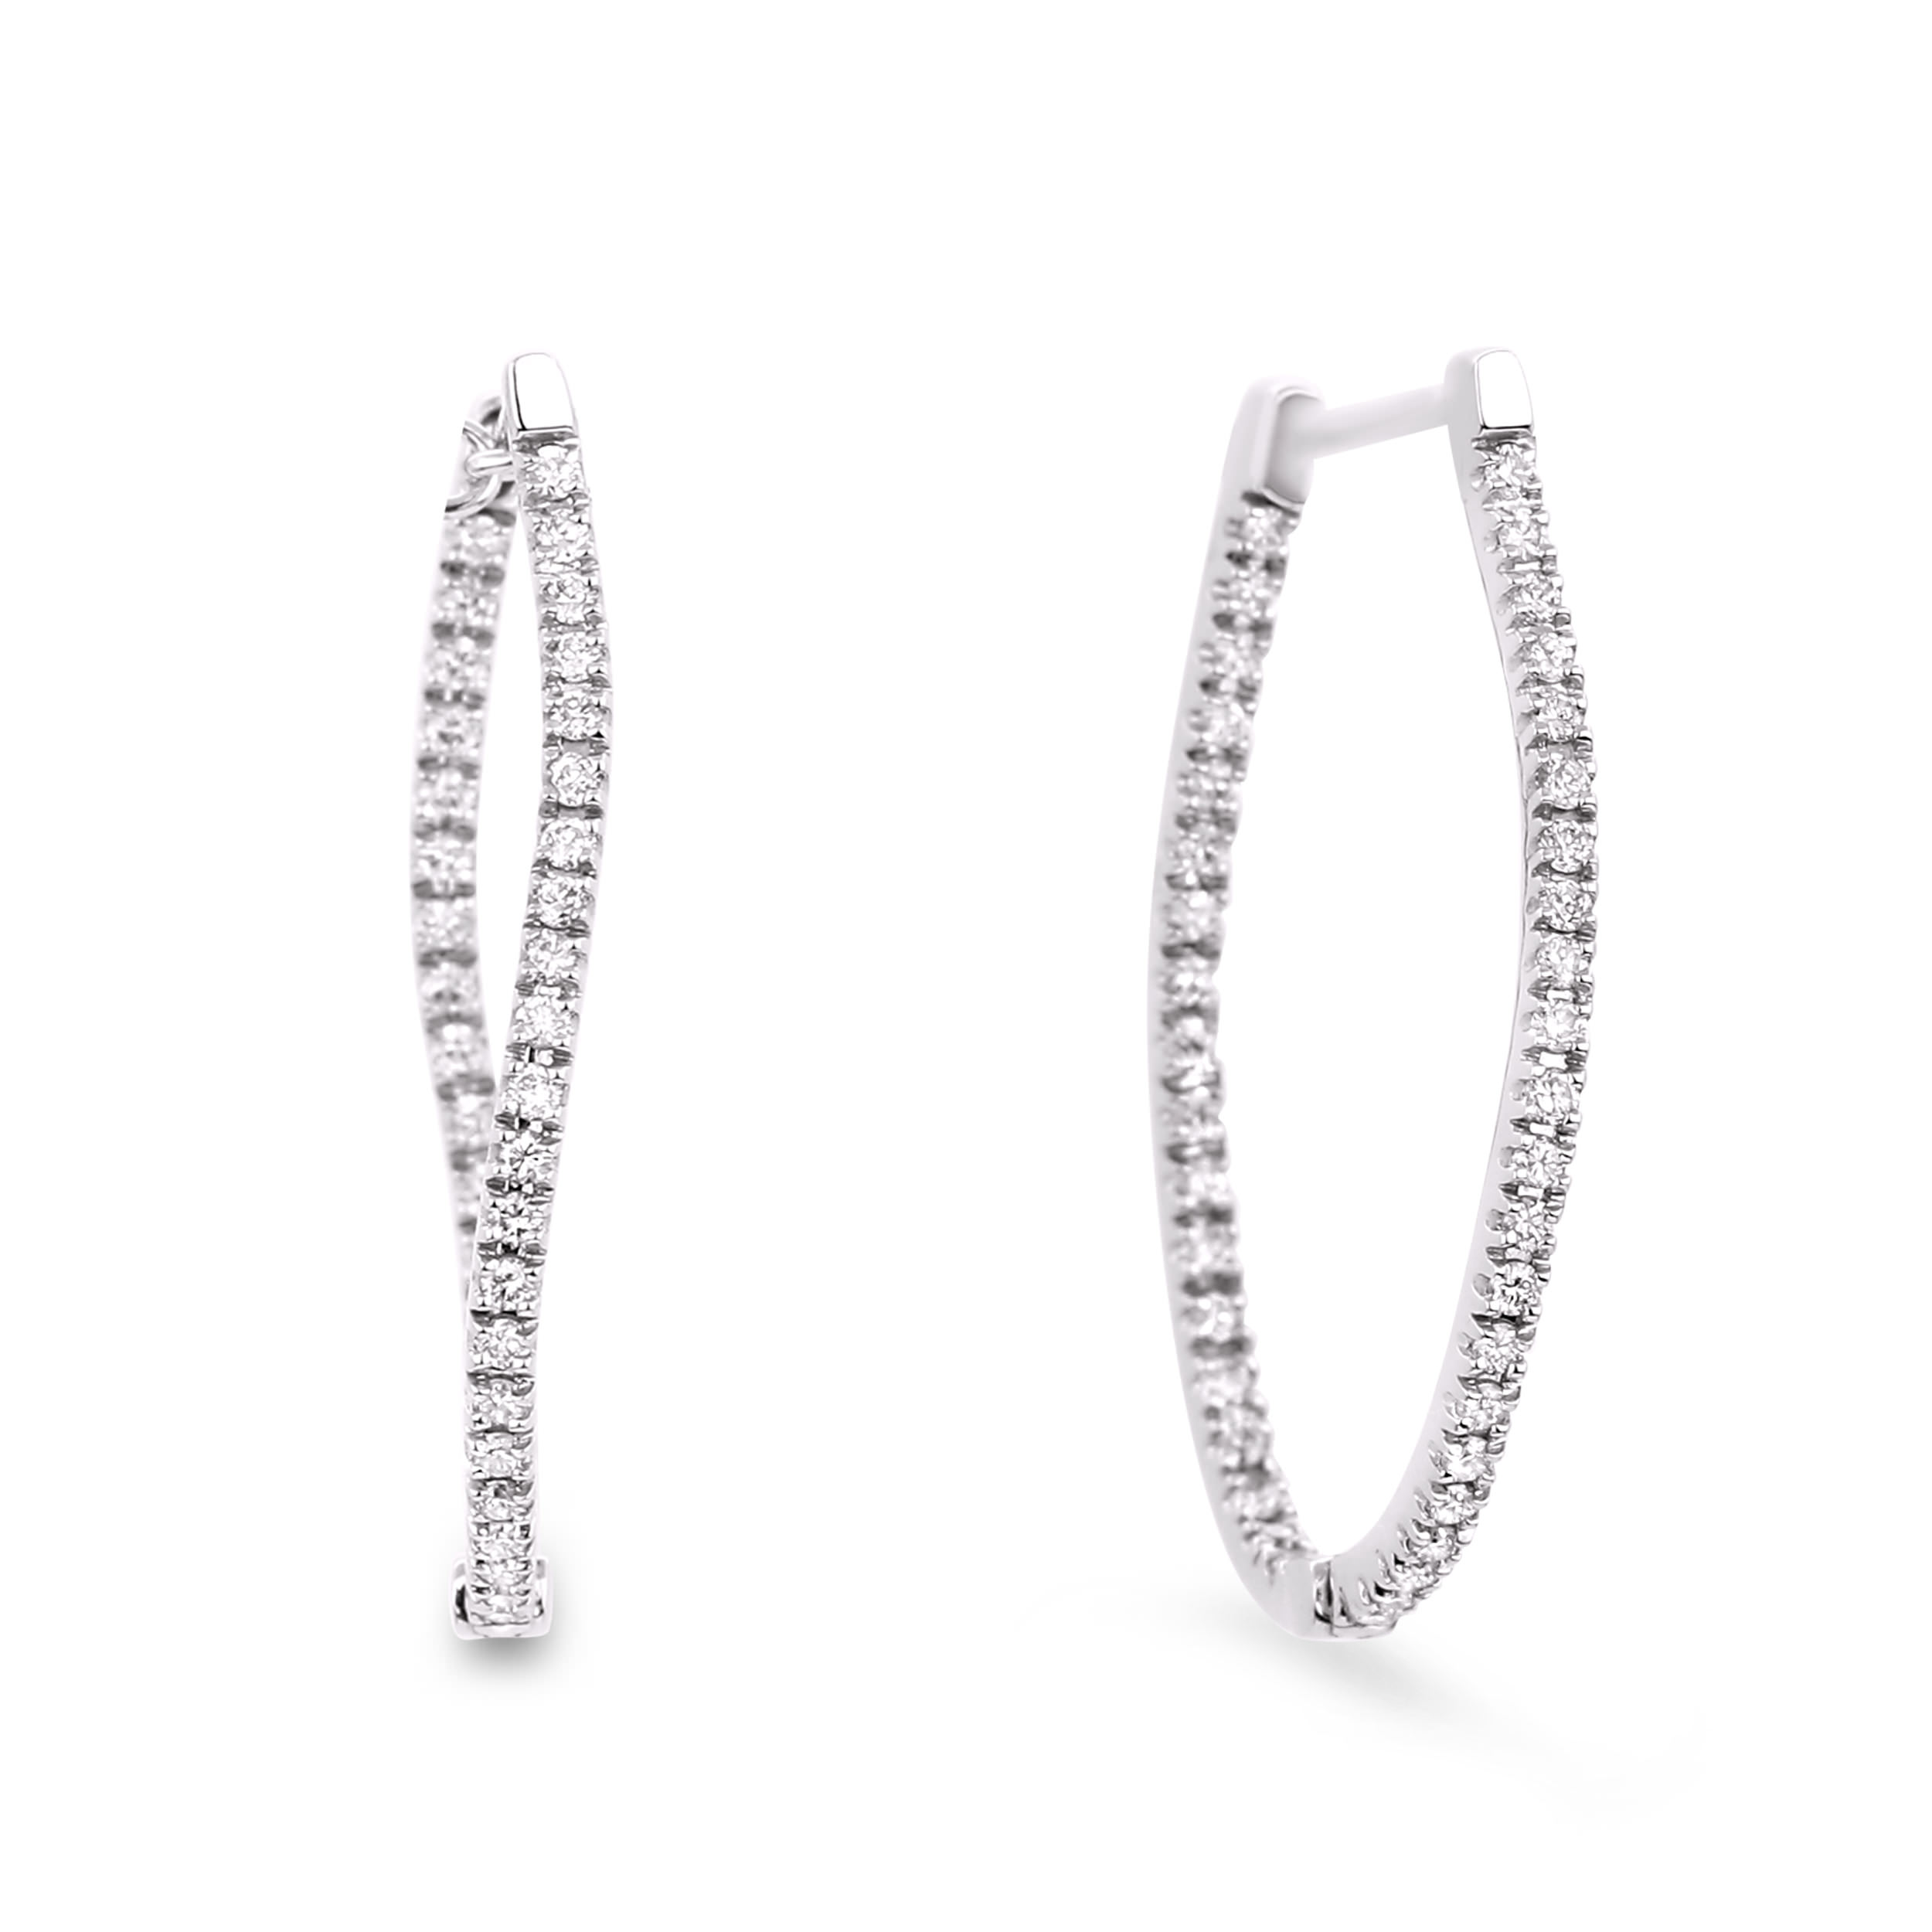 Diamond Hoop Earrings SGE118 (Earrings)